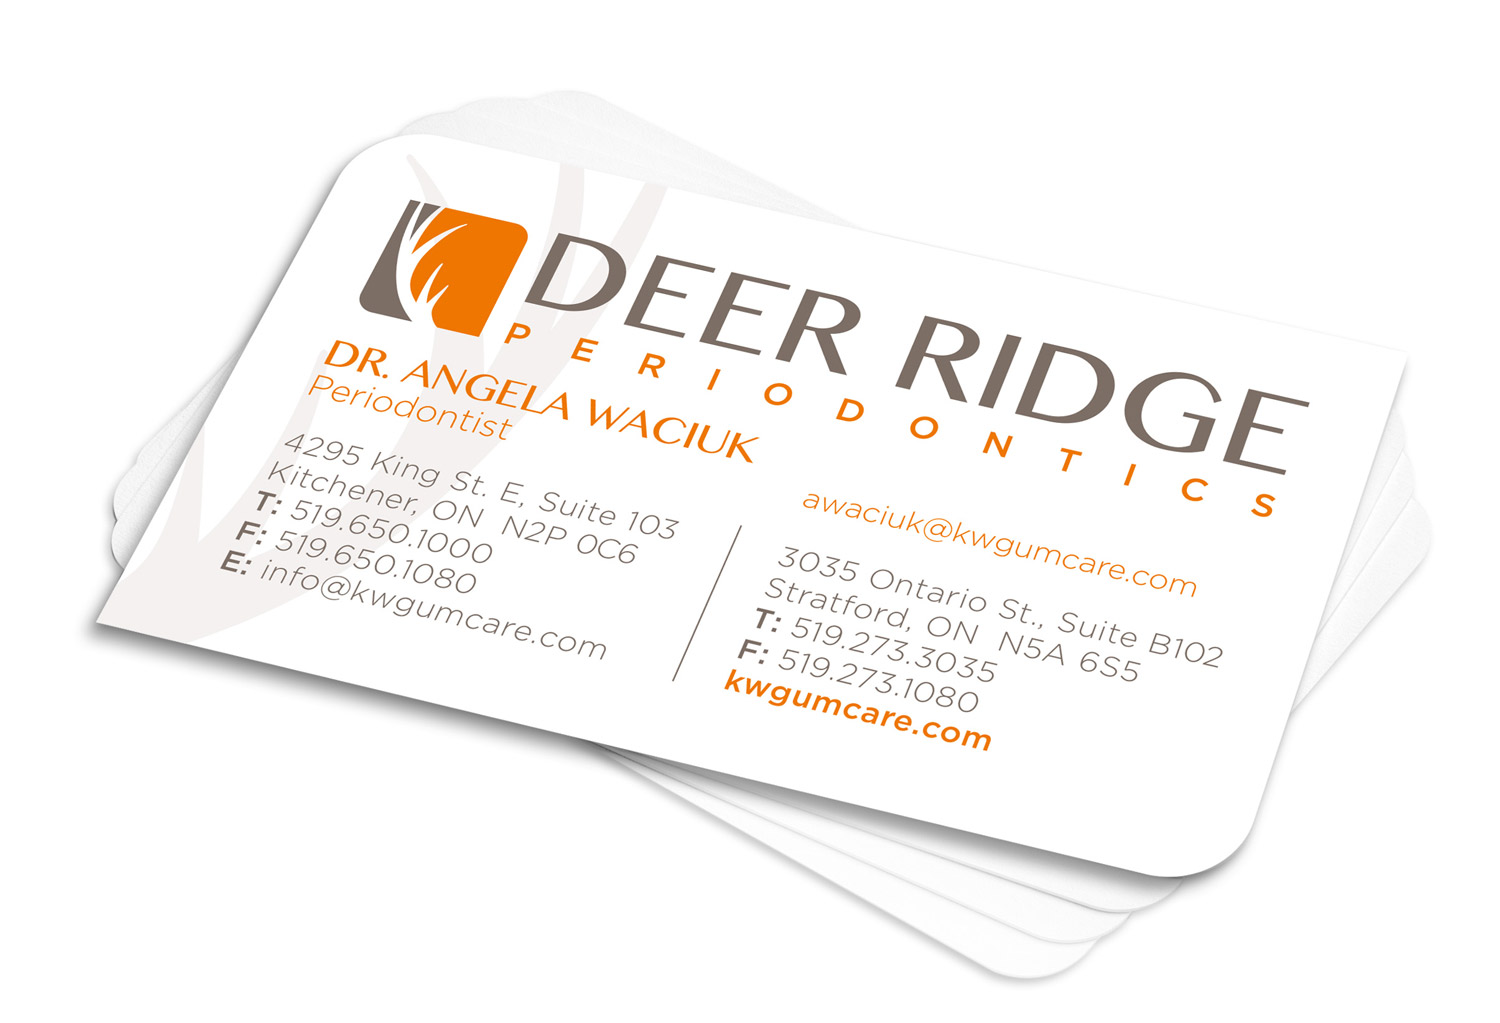 Deer Ridge Periodontics Business Cards